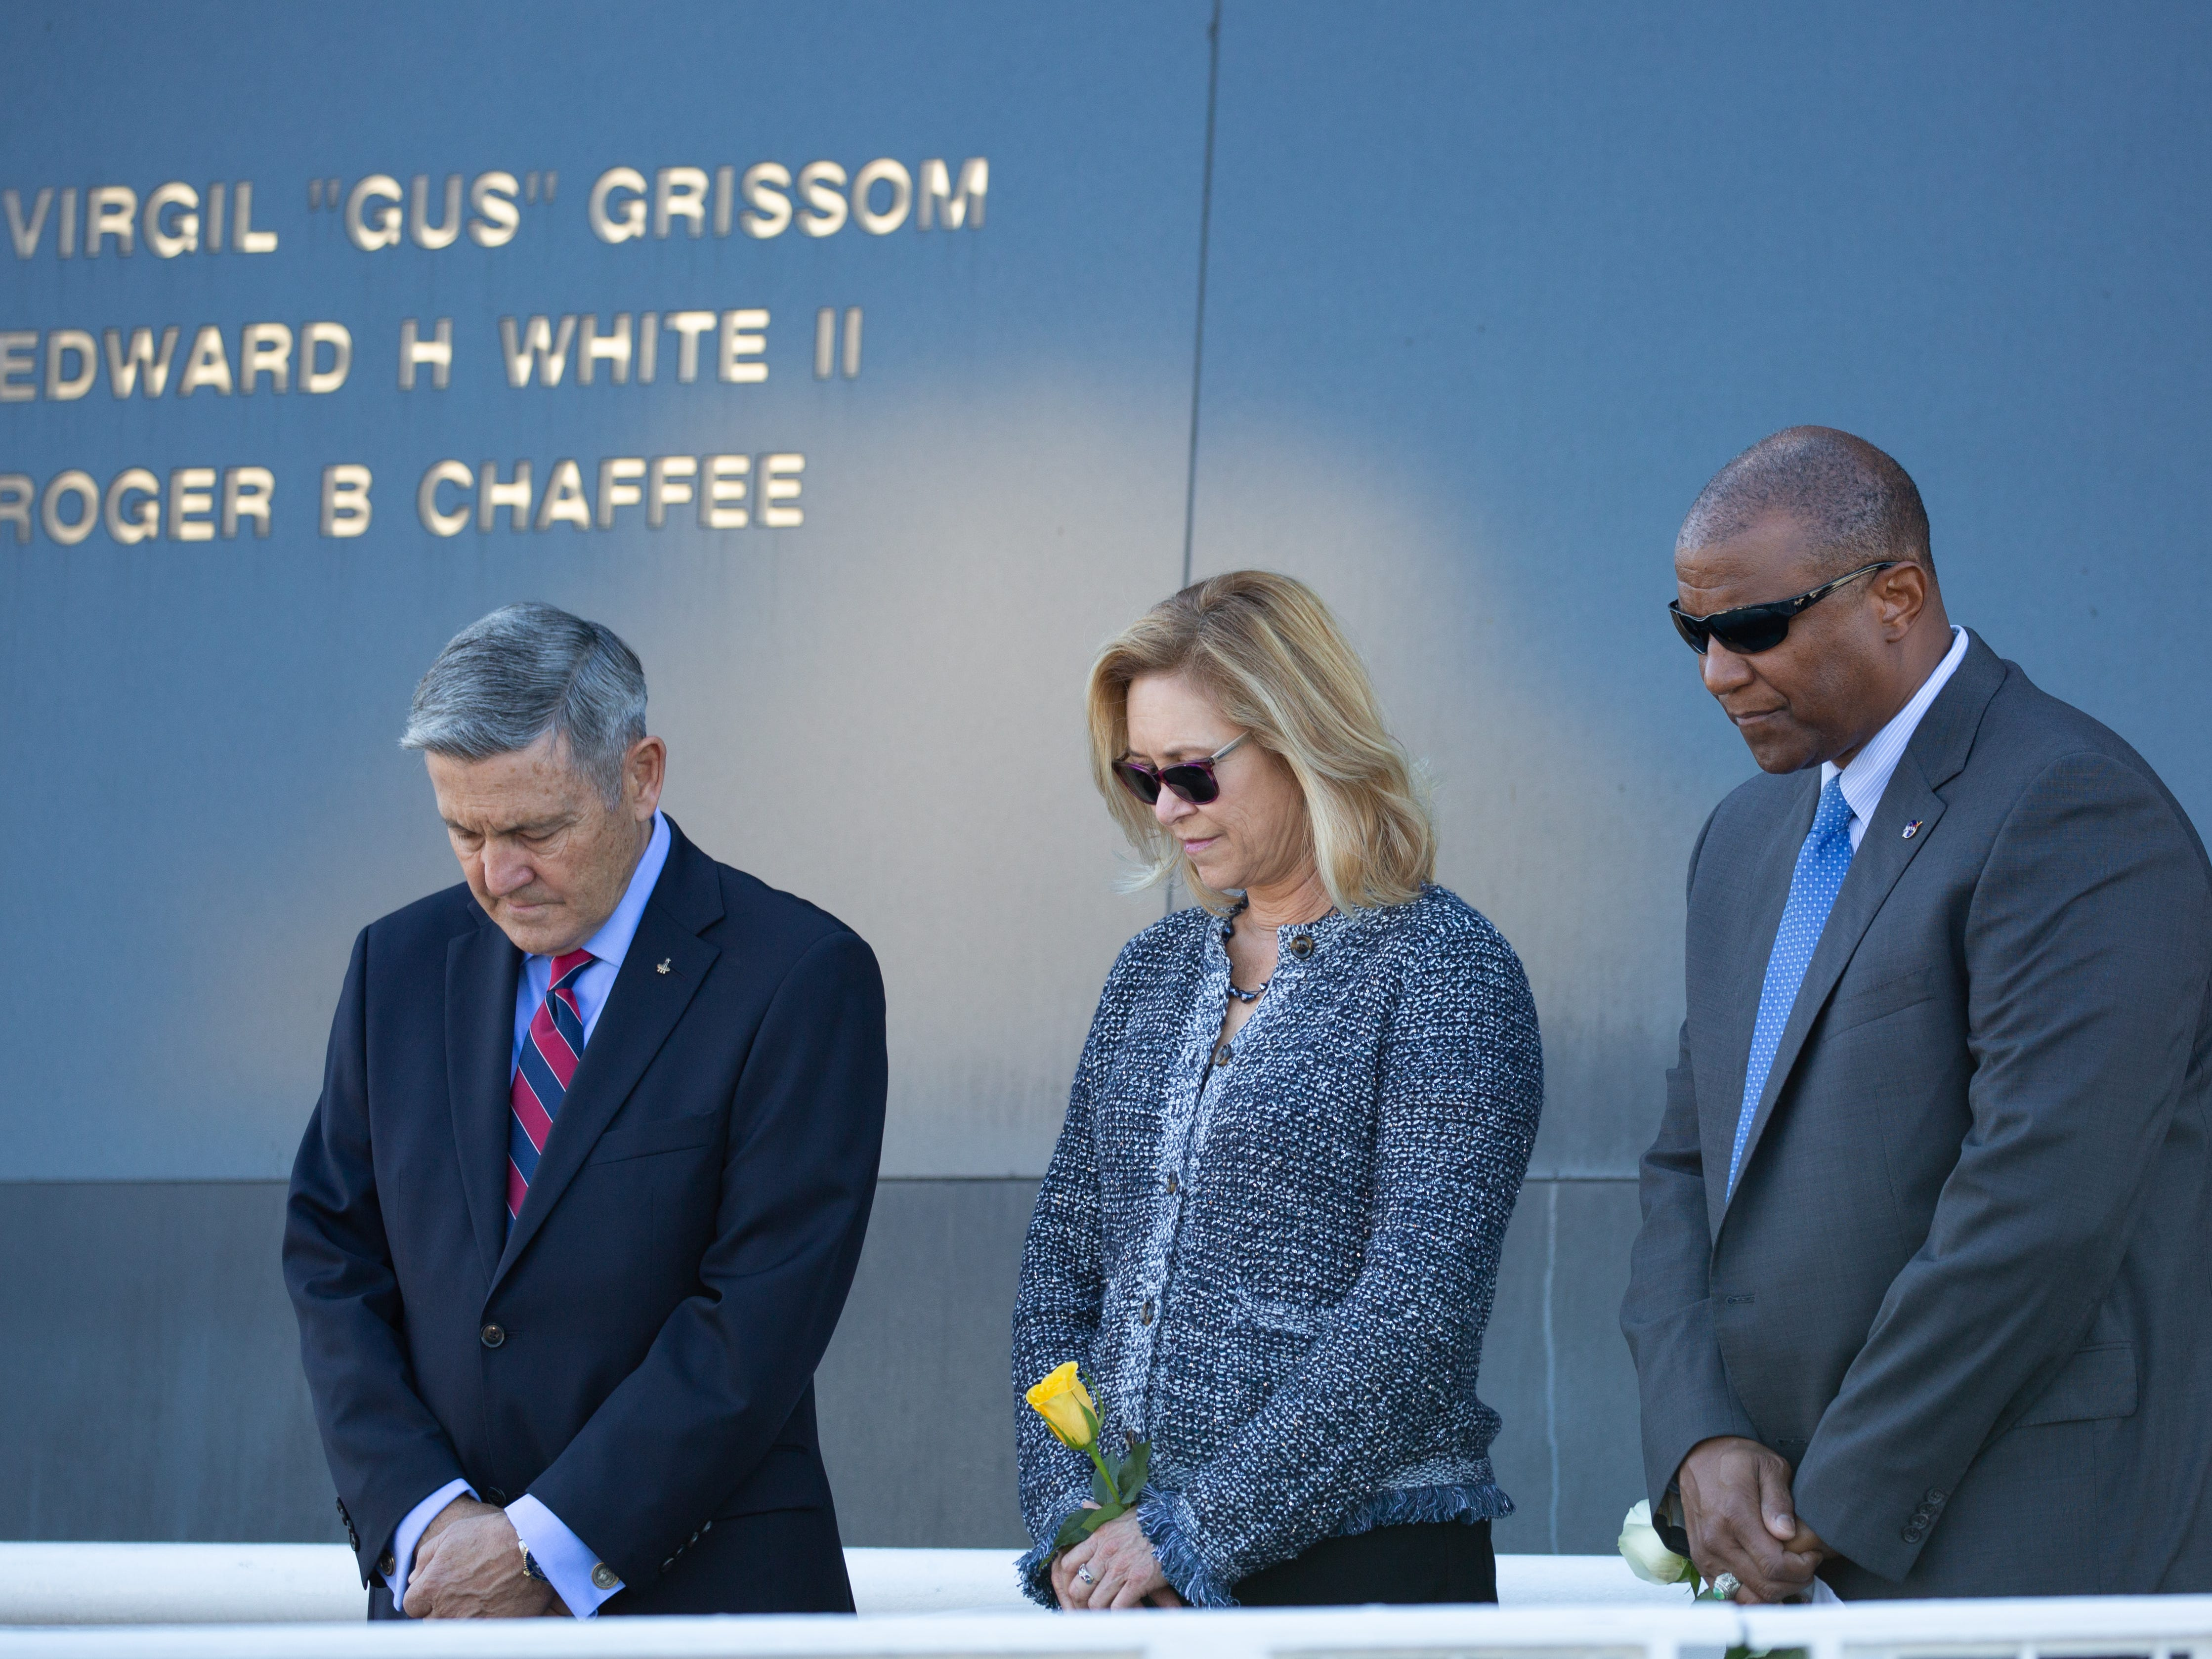 Kennedy Space Center Director Bob Cabana, Deputy Director Janet Petro and Associate Director Kelvin Manning attend NASA's Day of Remembrance at the Kennedy Space Center Visitor Complex on Thursday, Feb. 7, 2019.